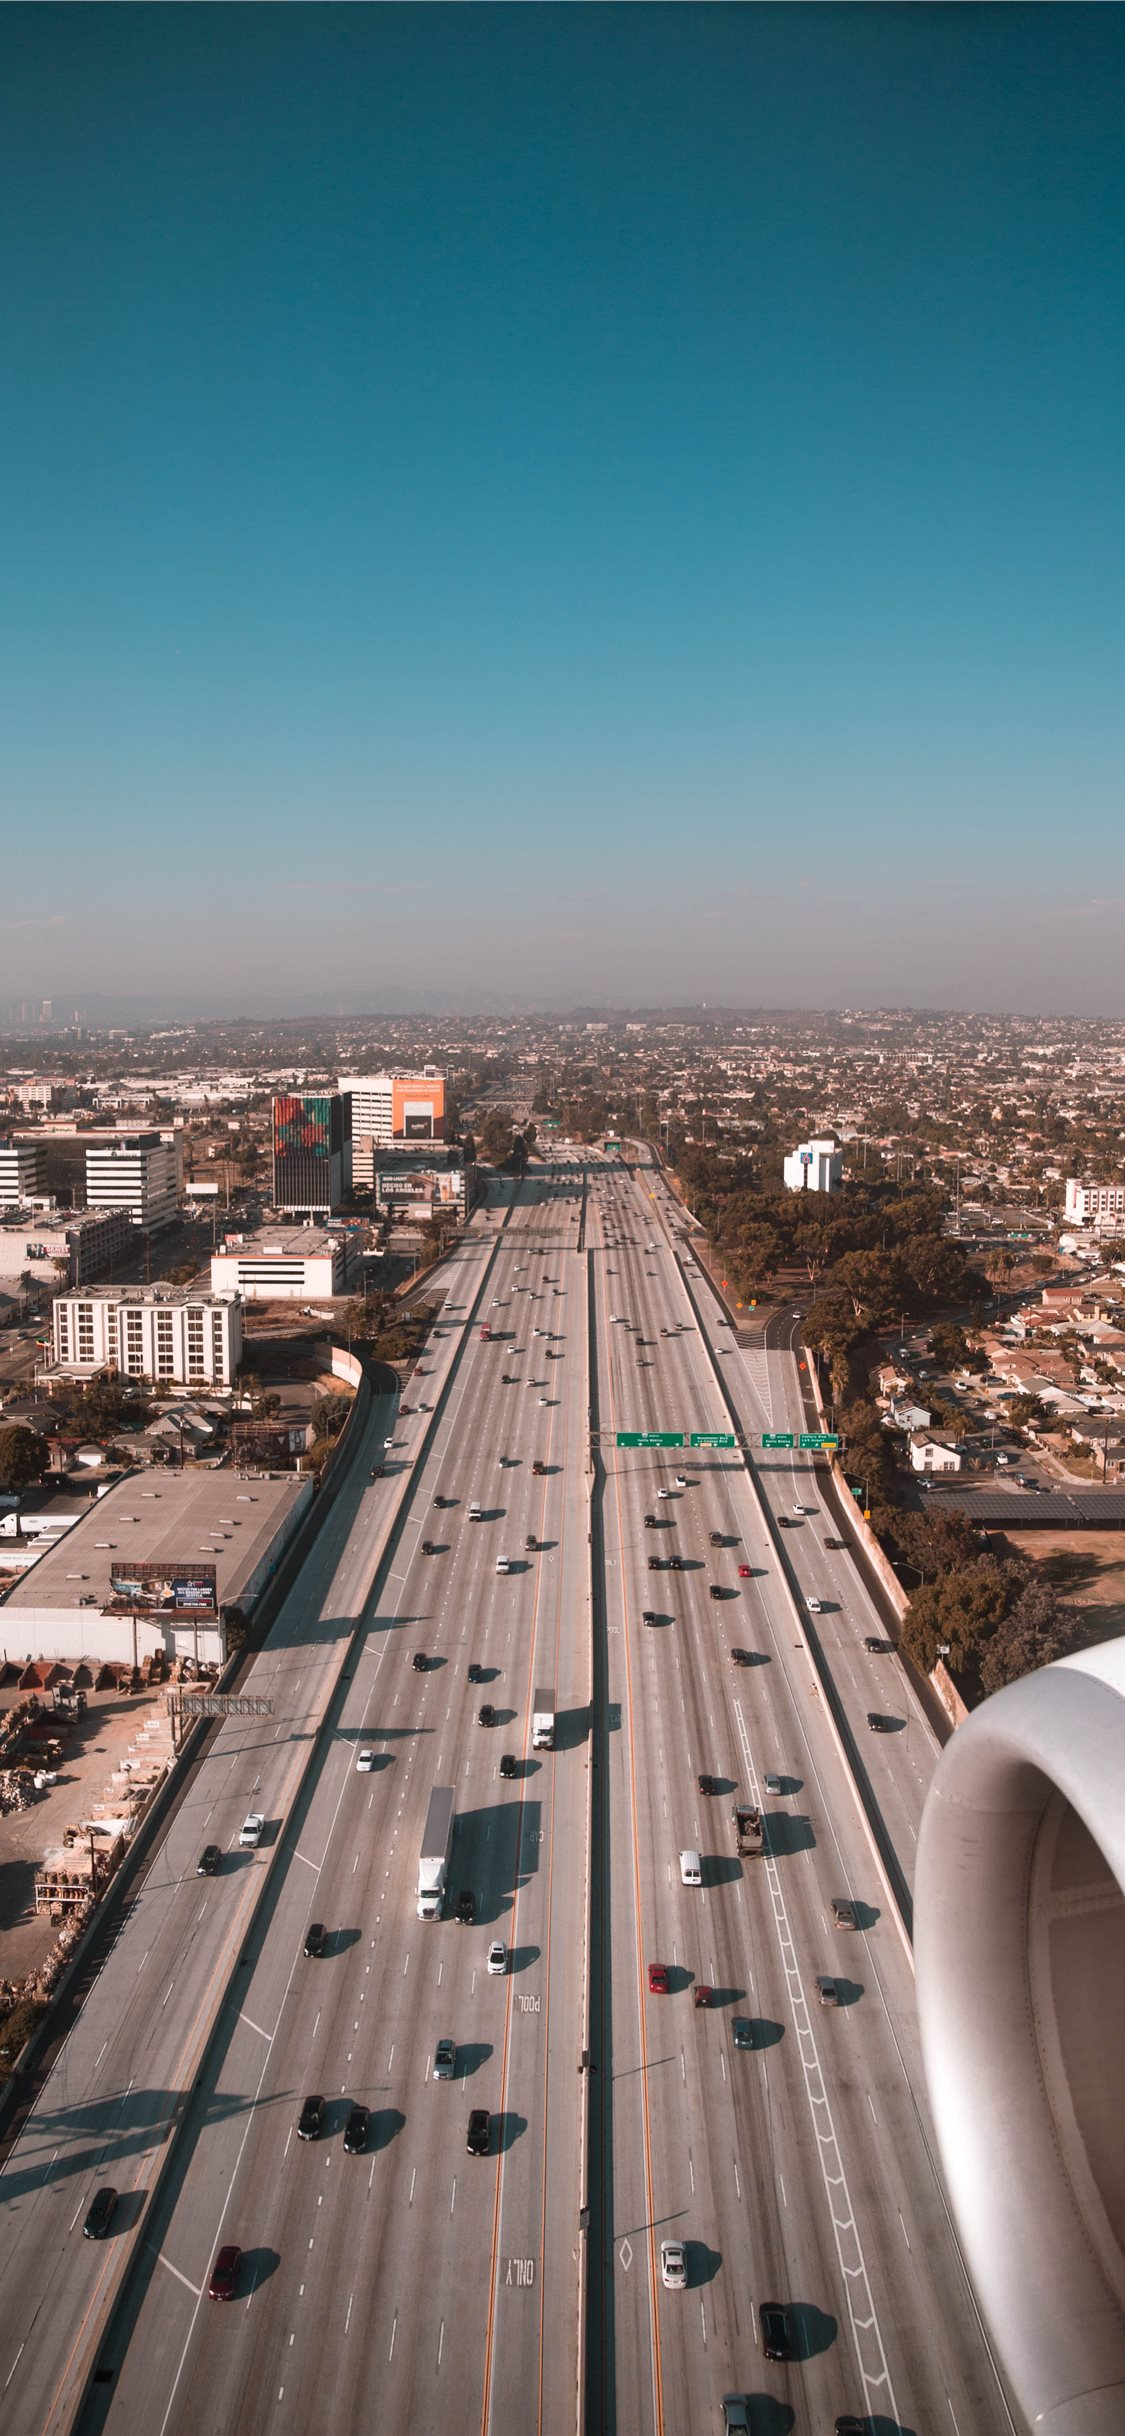 La Highway Iphone X Wallpapers Free Download